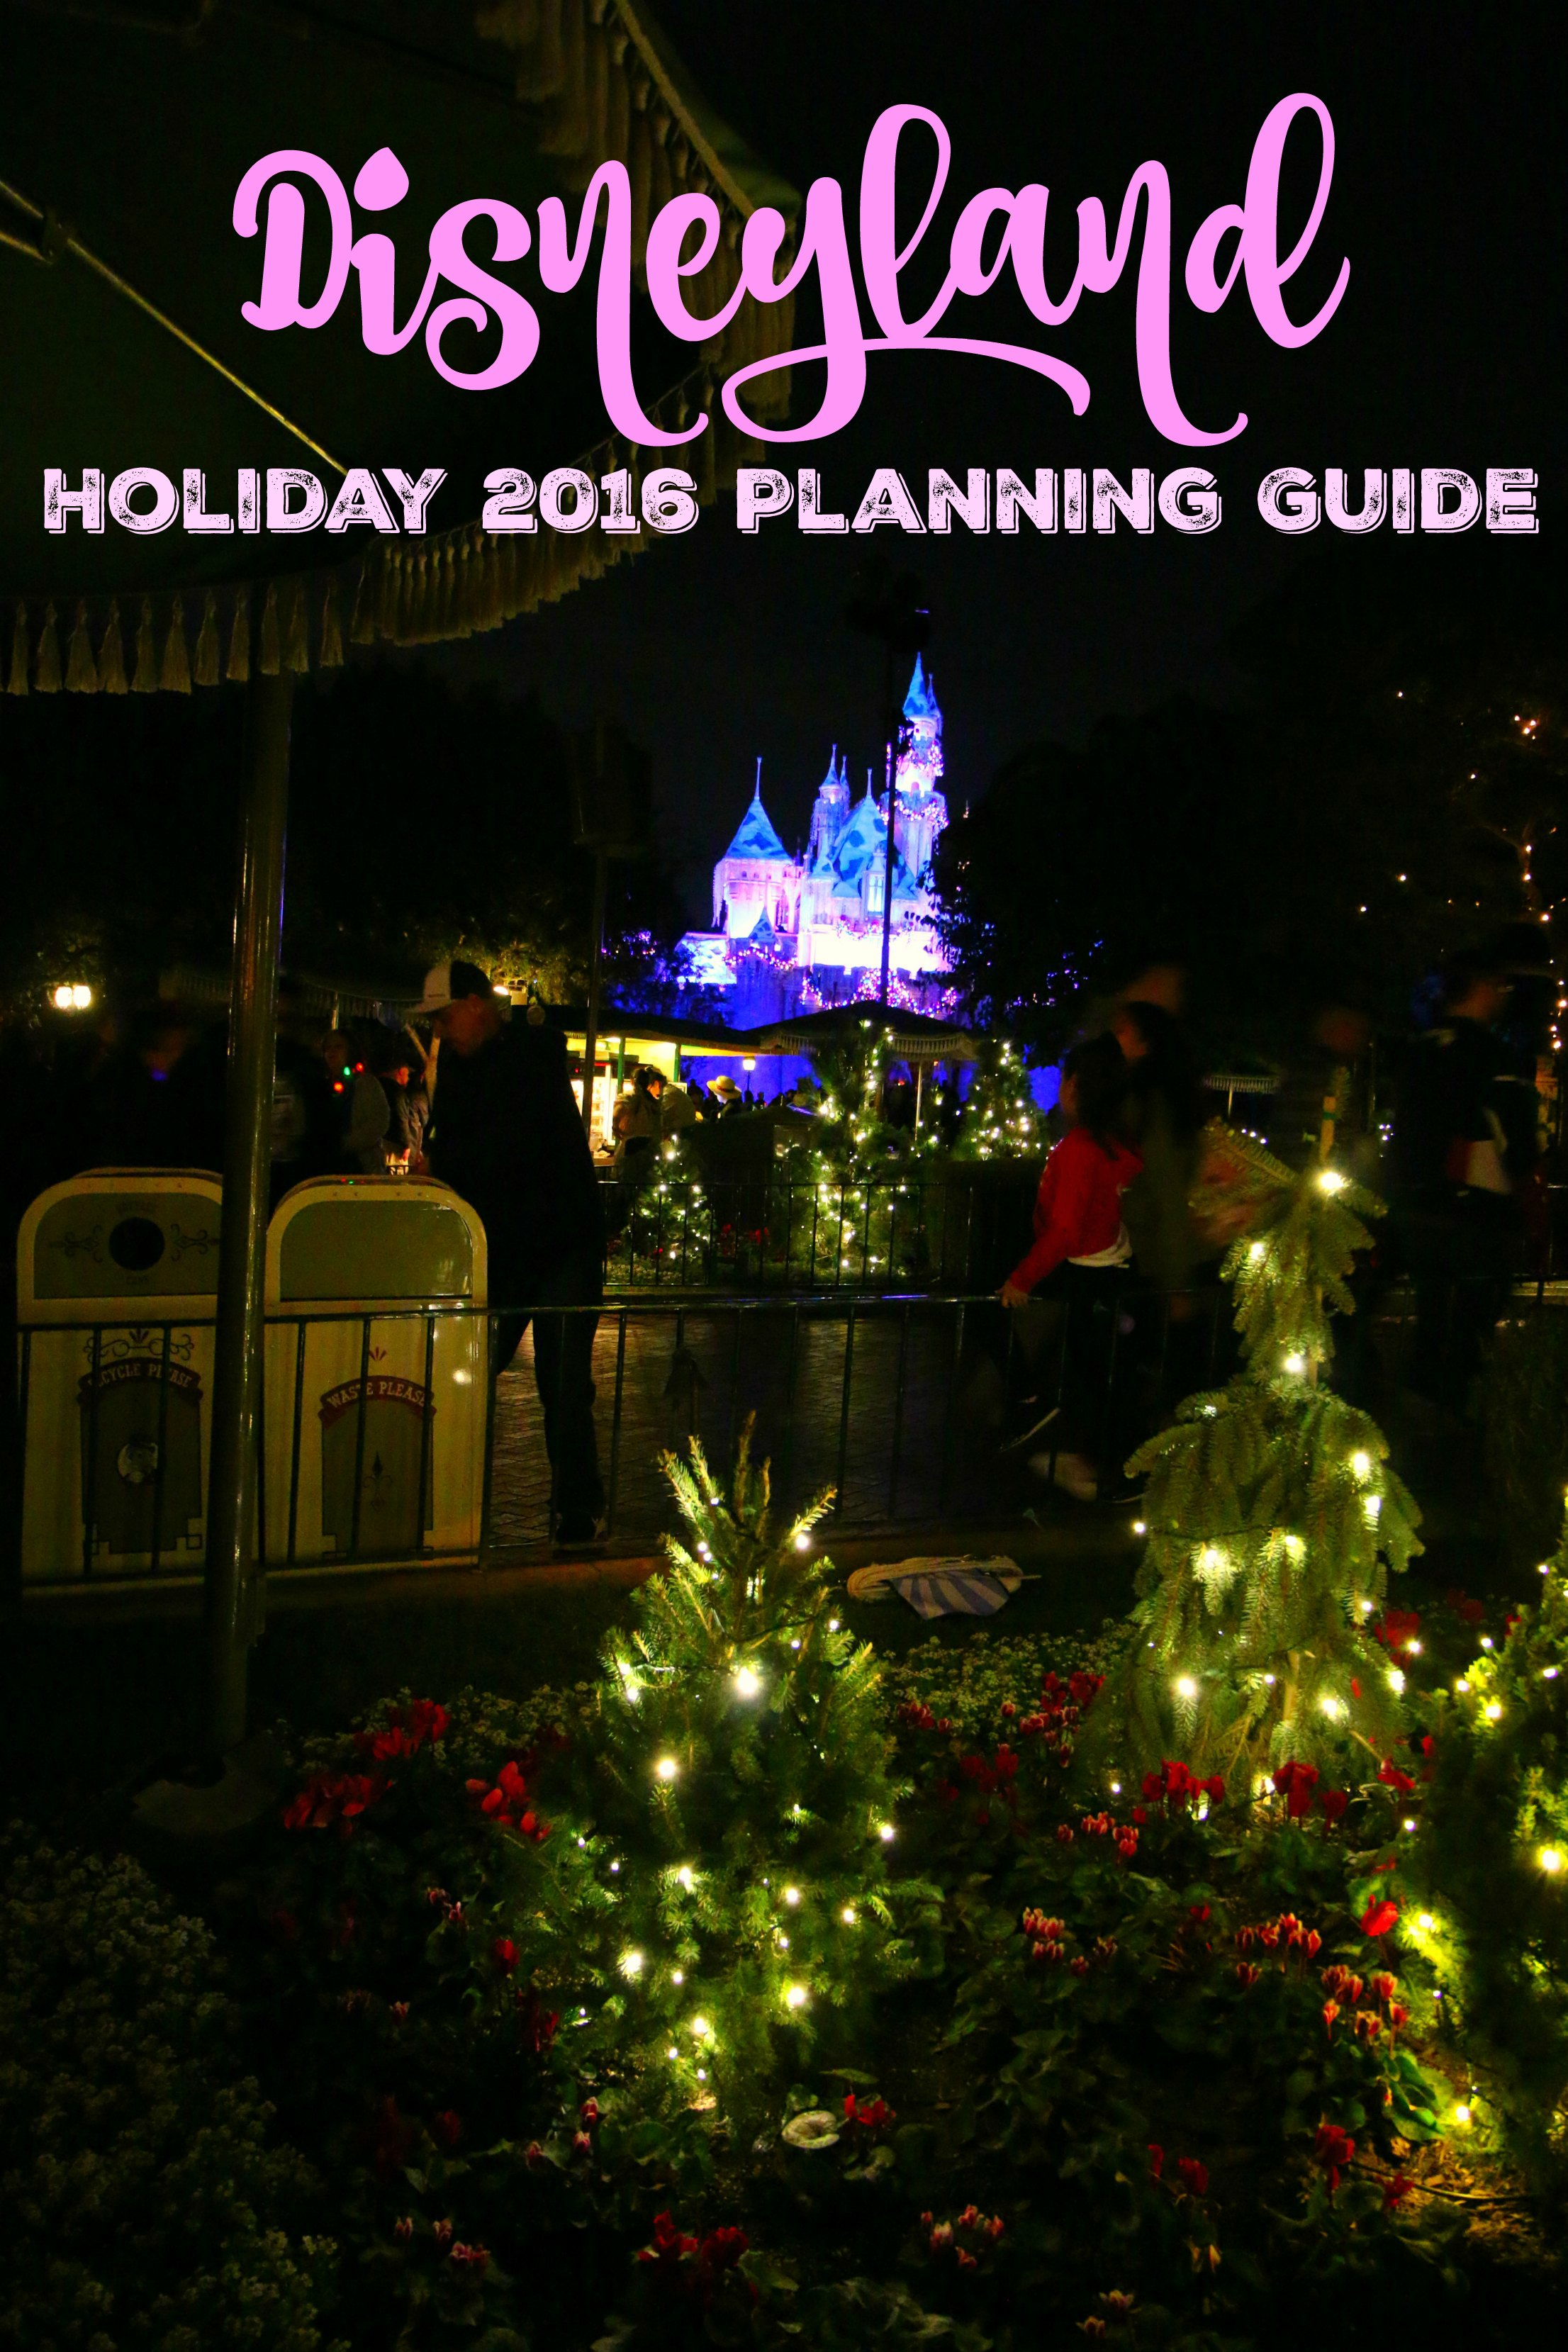 disneyland-holiday-2016-planning-guide